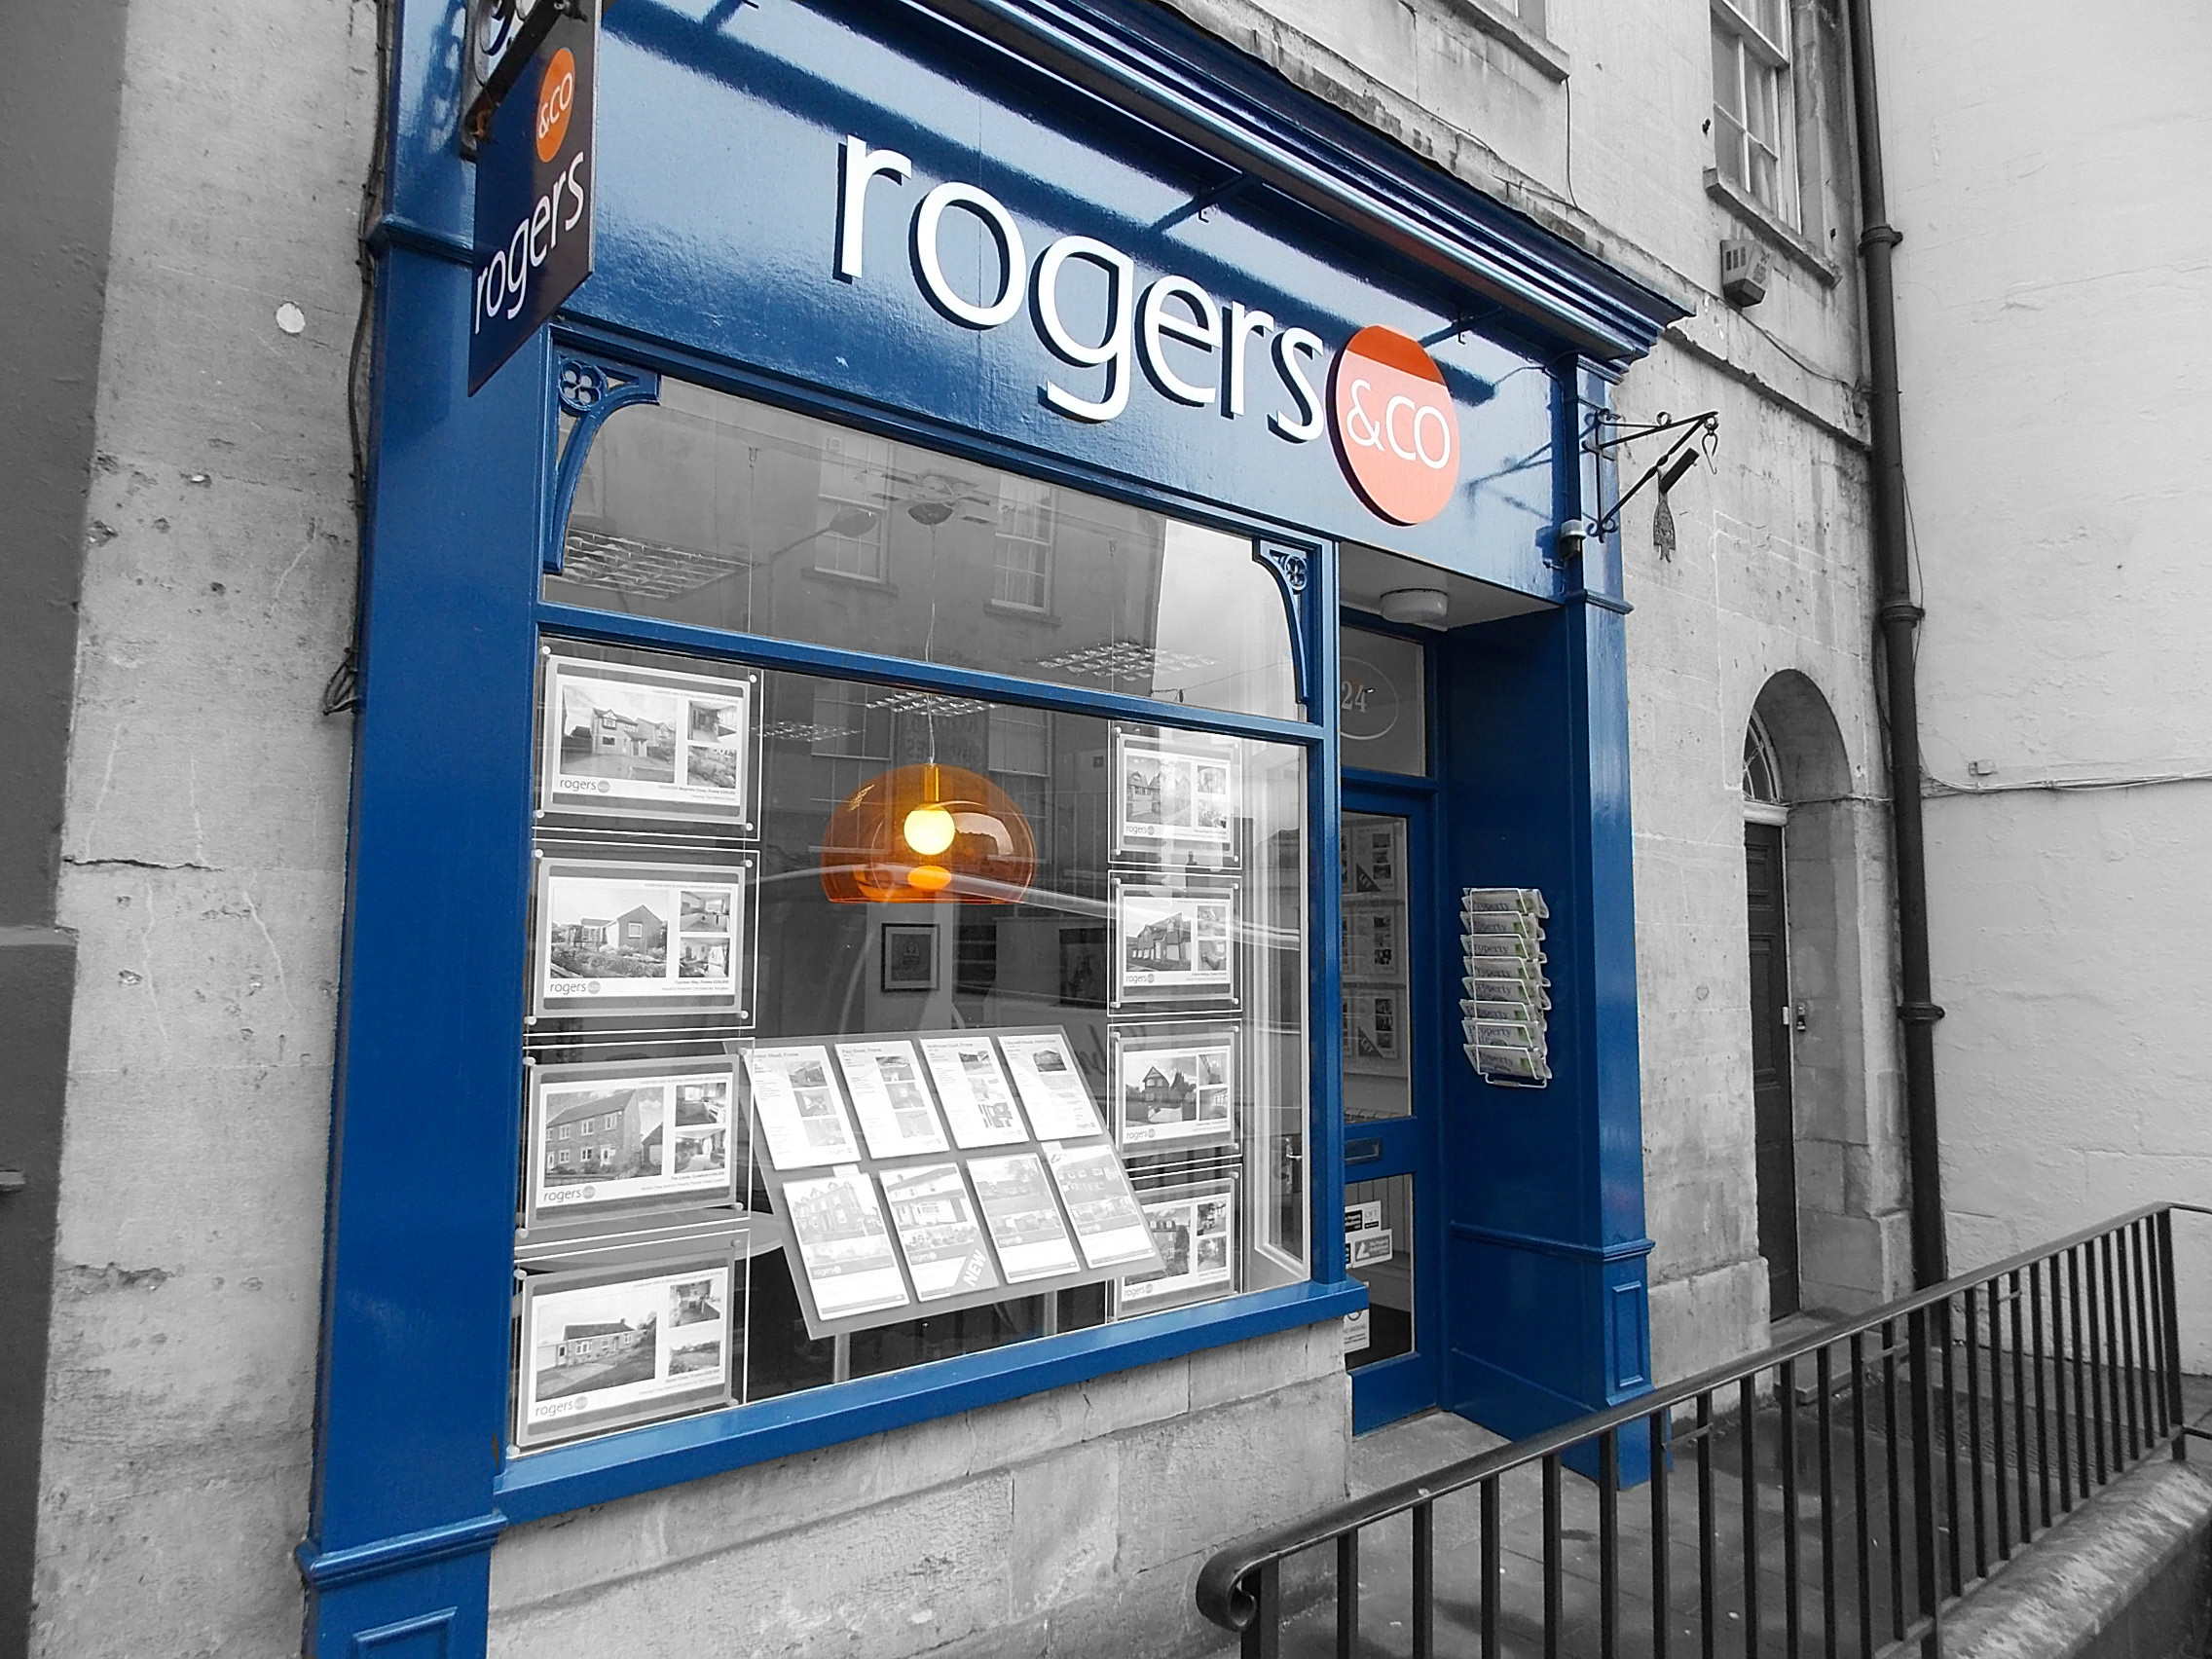 Rogers & Co